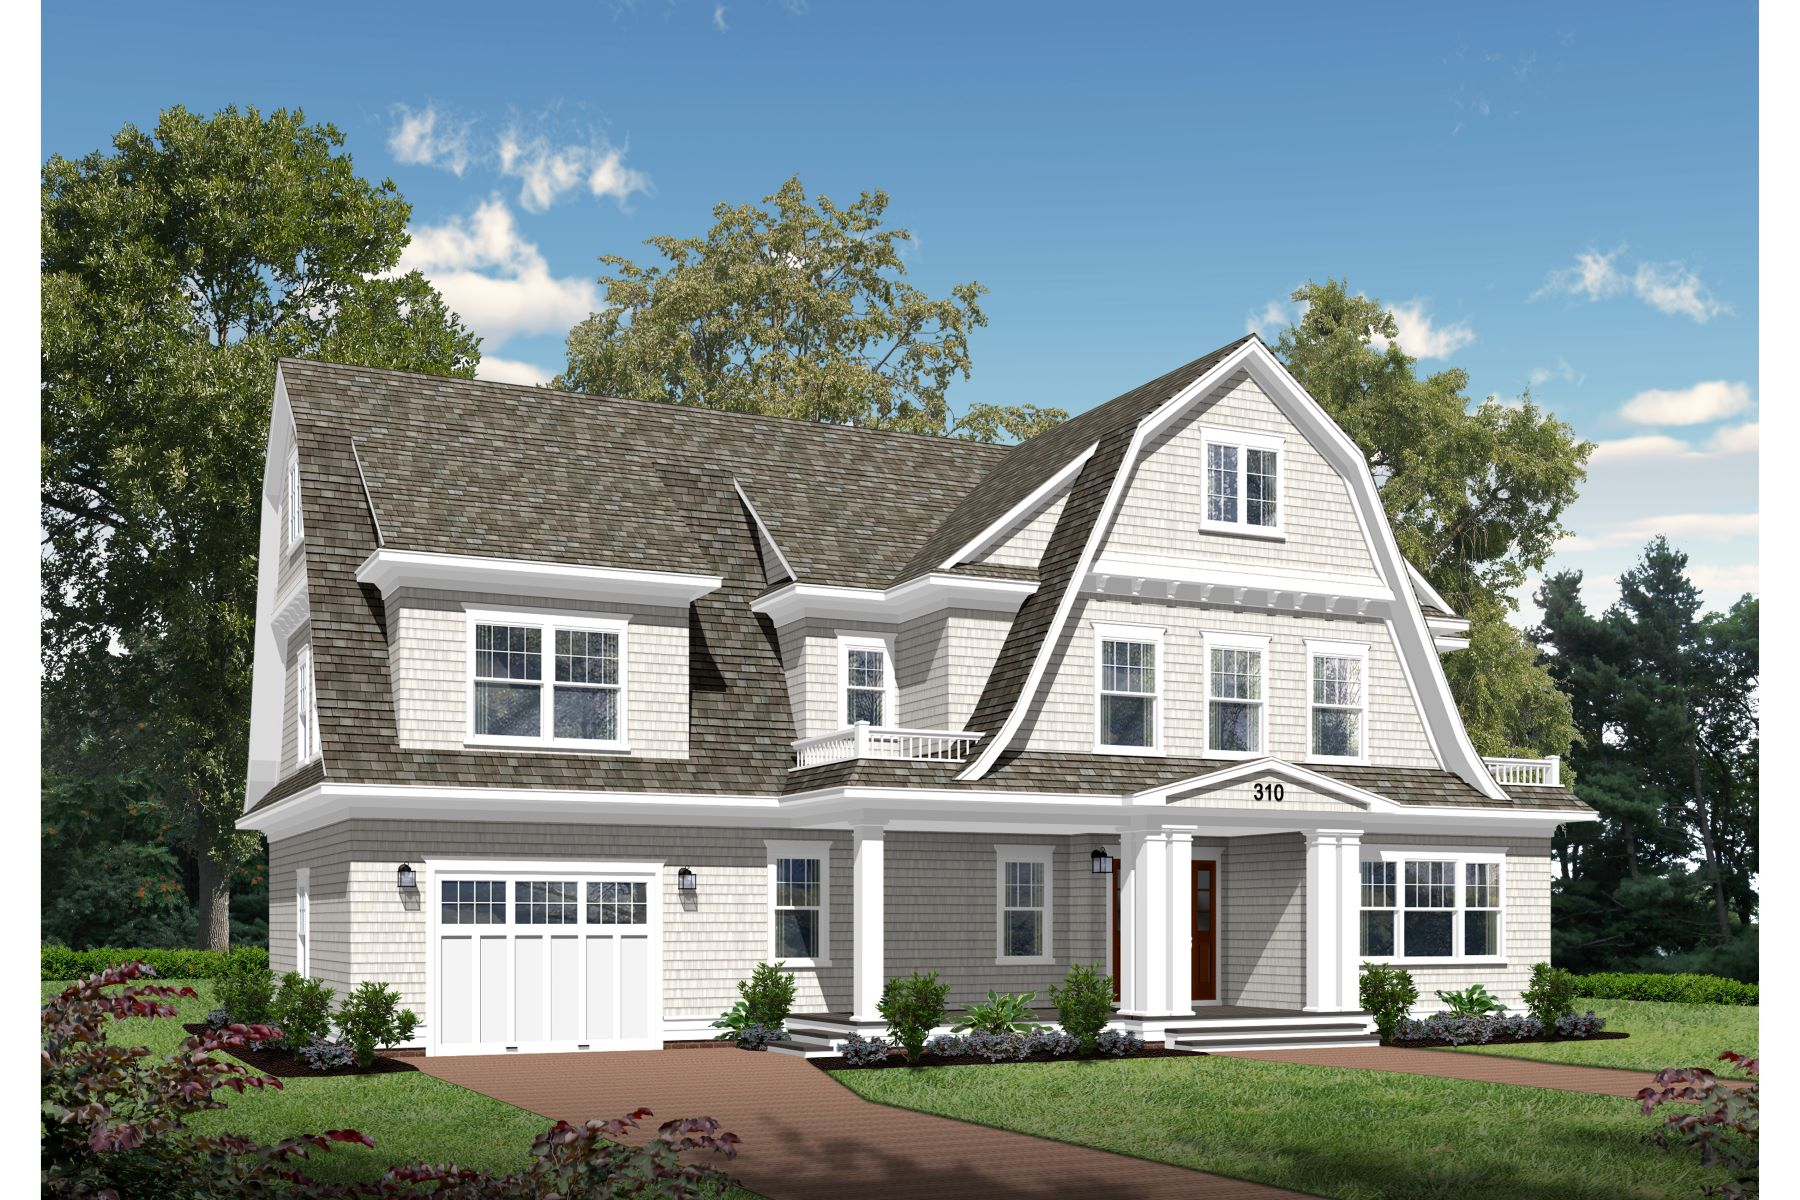 Moradia para Venda às Newly Constructed Shore Colonial 310 Beacon Blvd Sea Girt, Nova Jersey, 08750 Estados Unidos